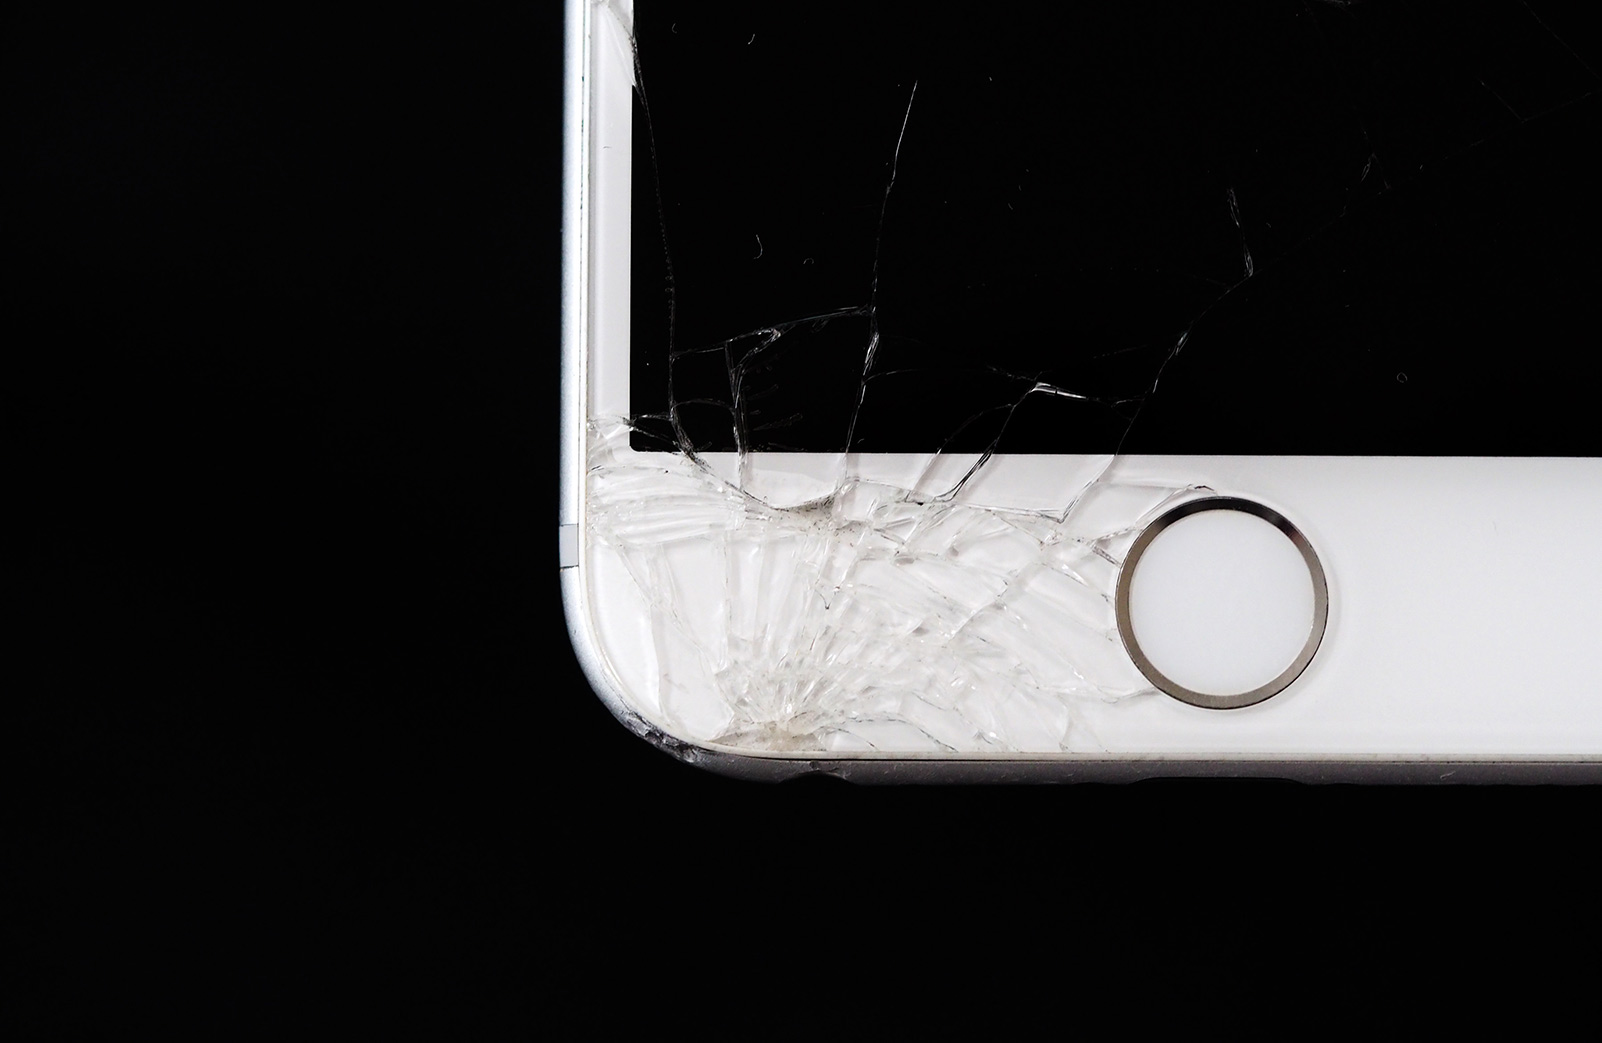 iphone with a cracked screen